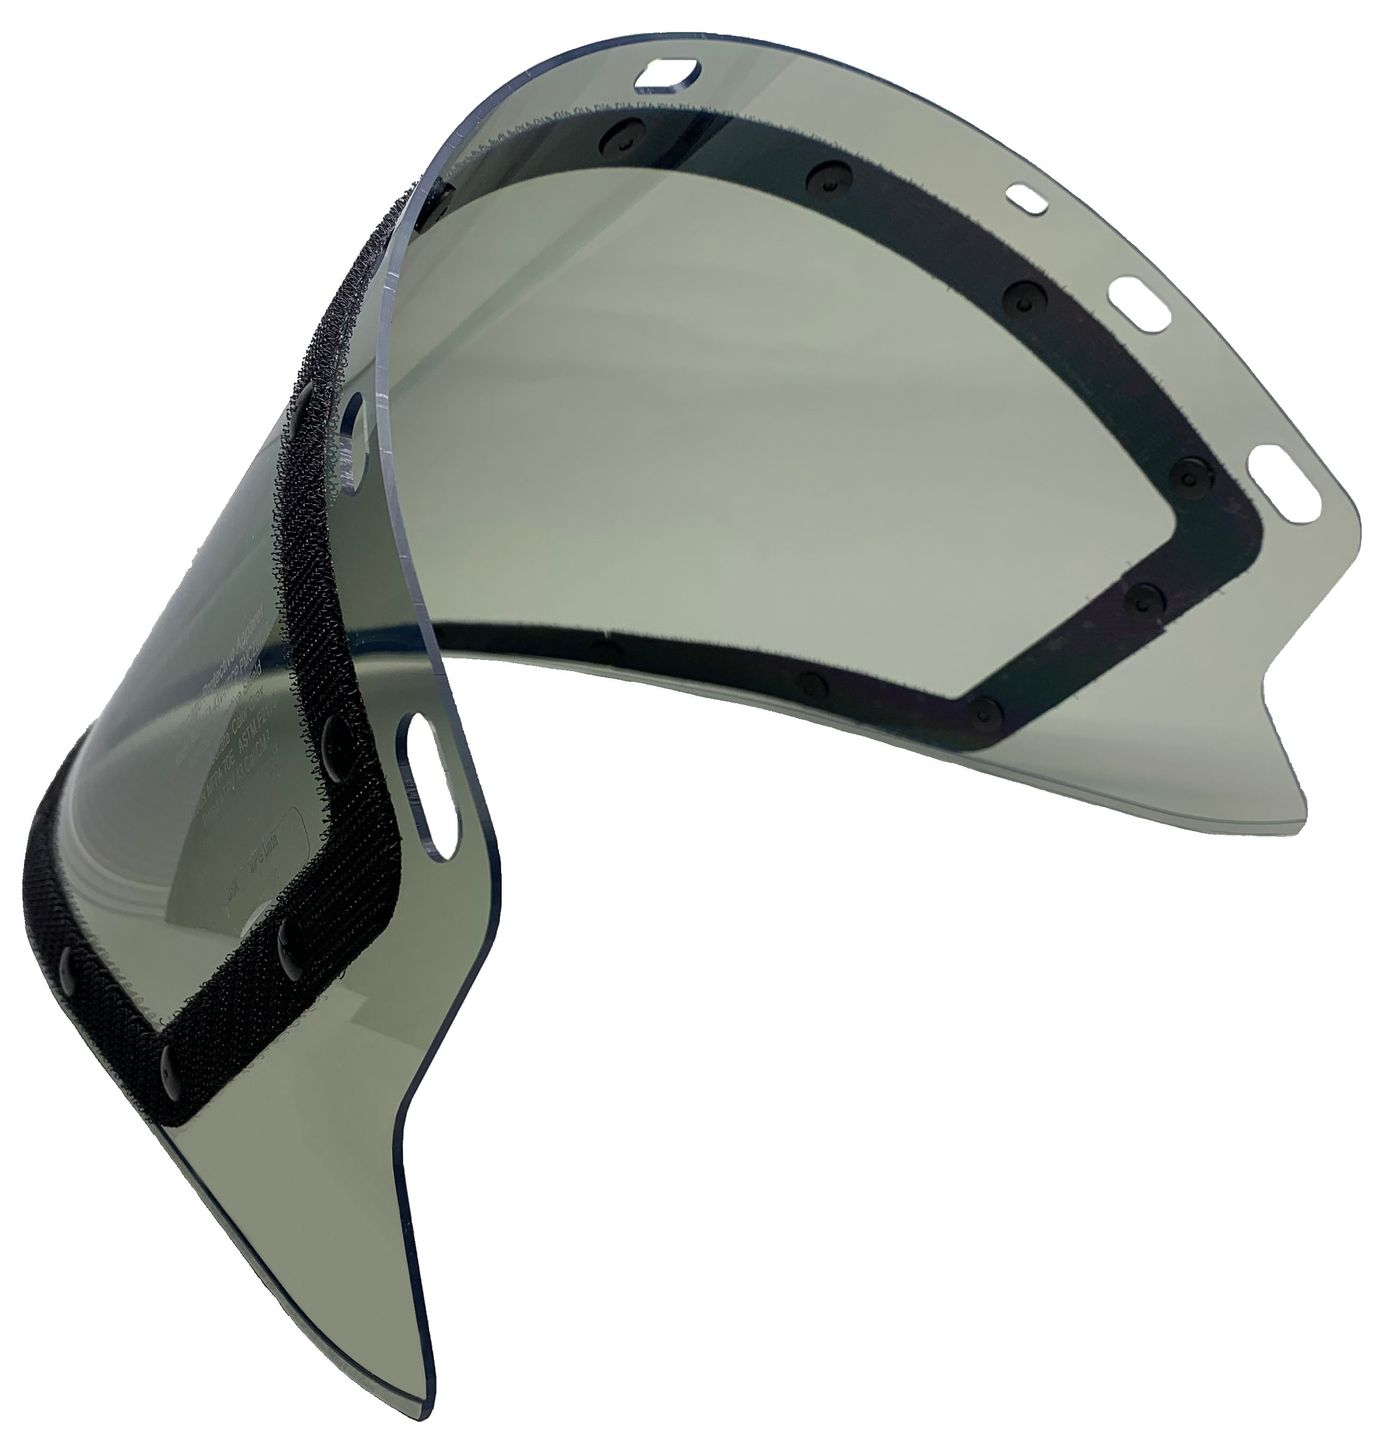 cpa-replacement-visors-for-overhoods-cpwv-arc-40htv-back.jpg